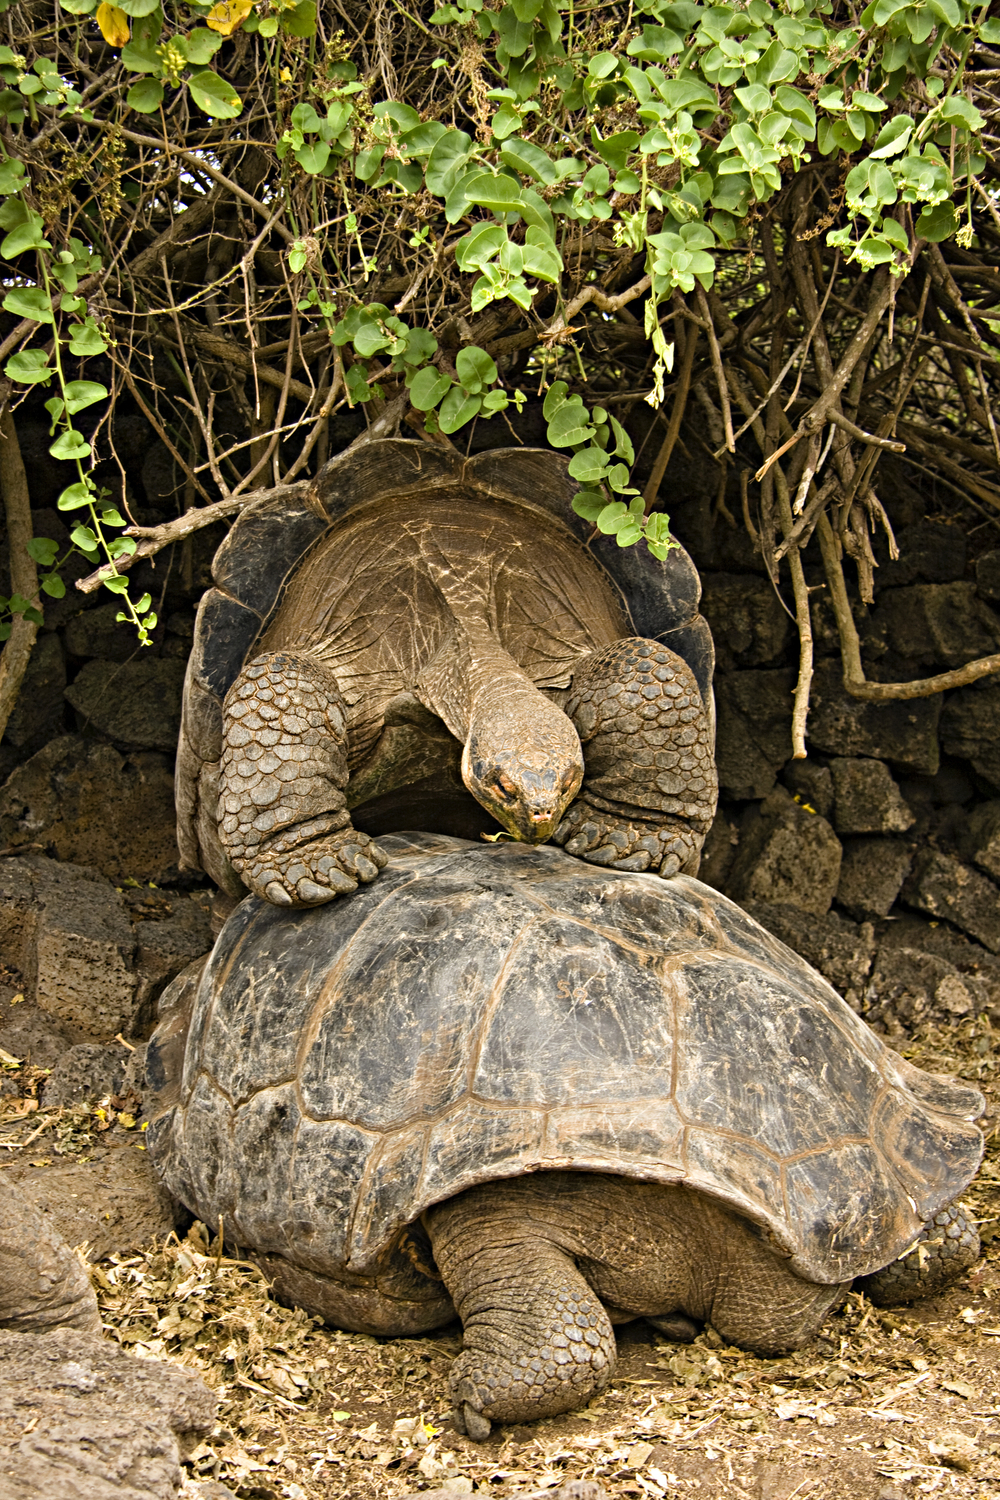 Tortoises fornicating from the wrong end